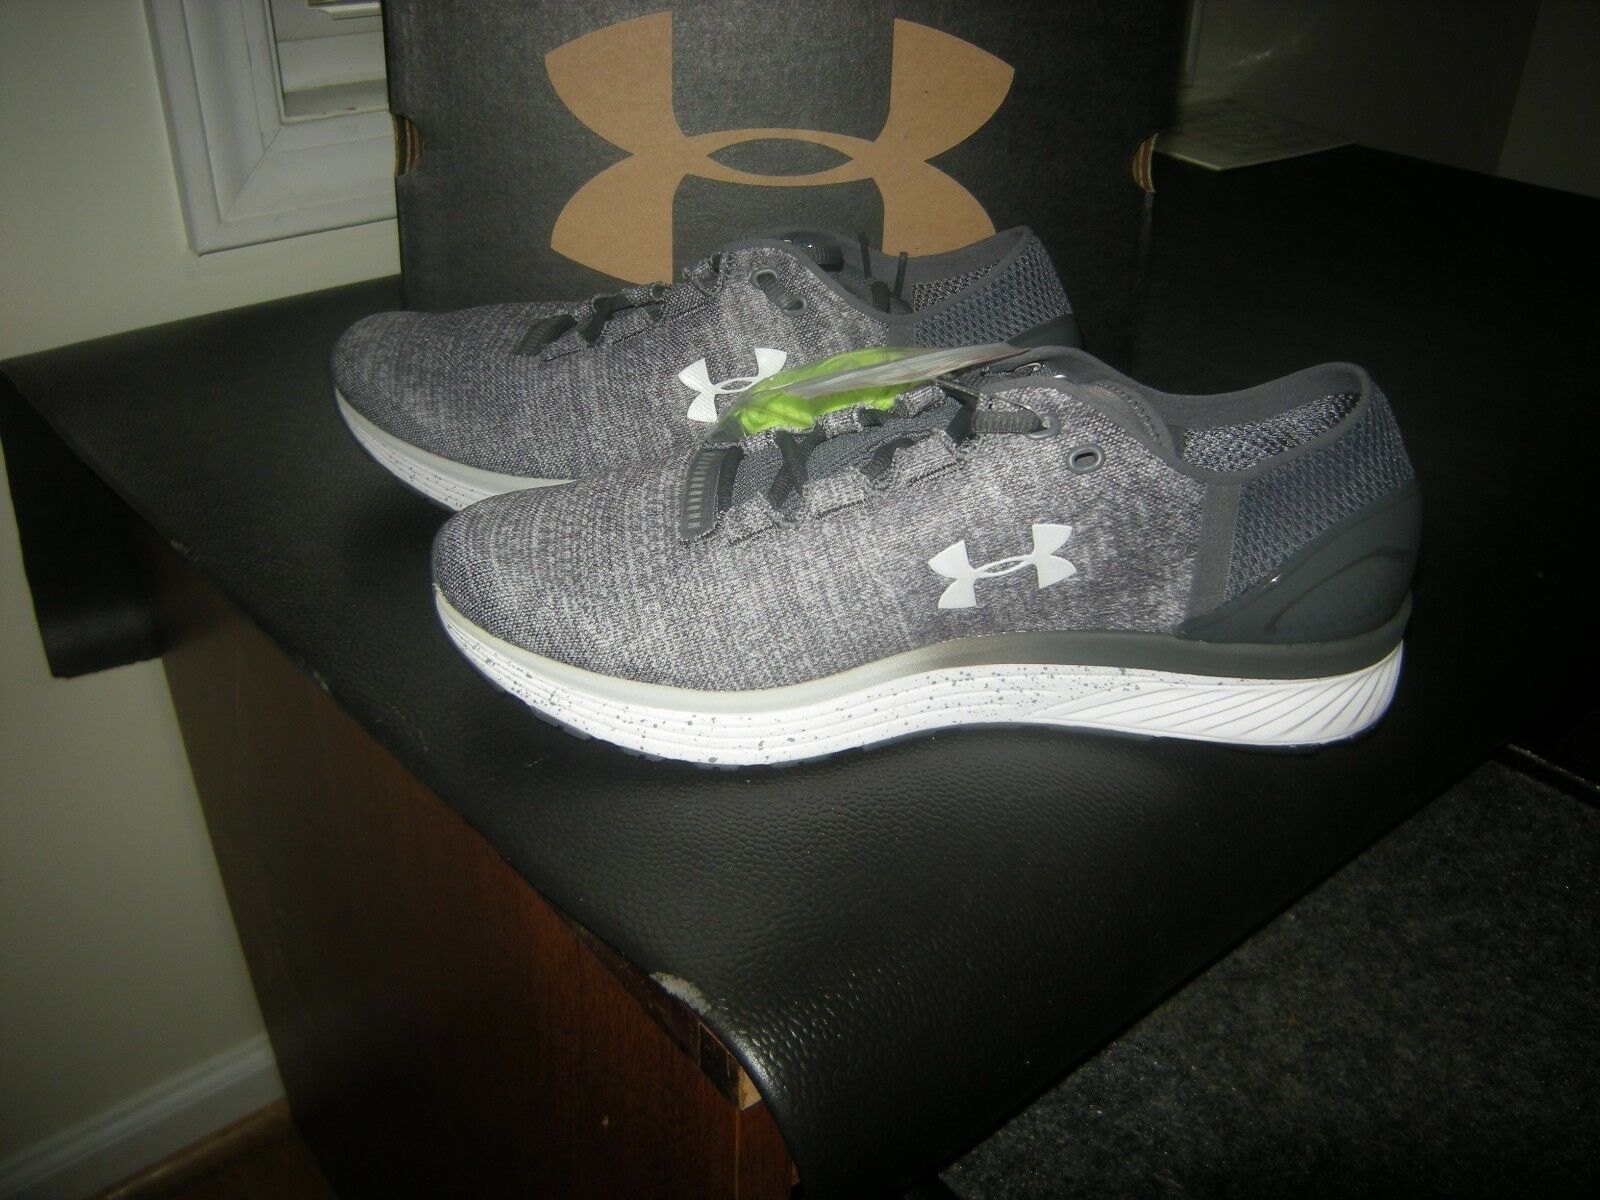 New Mens Gray & Green Under Armour Charged Bandit 3 Tennis Shoes Size 11